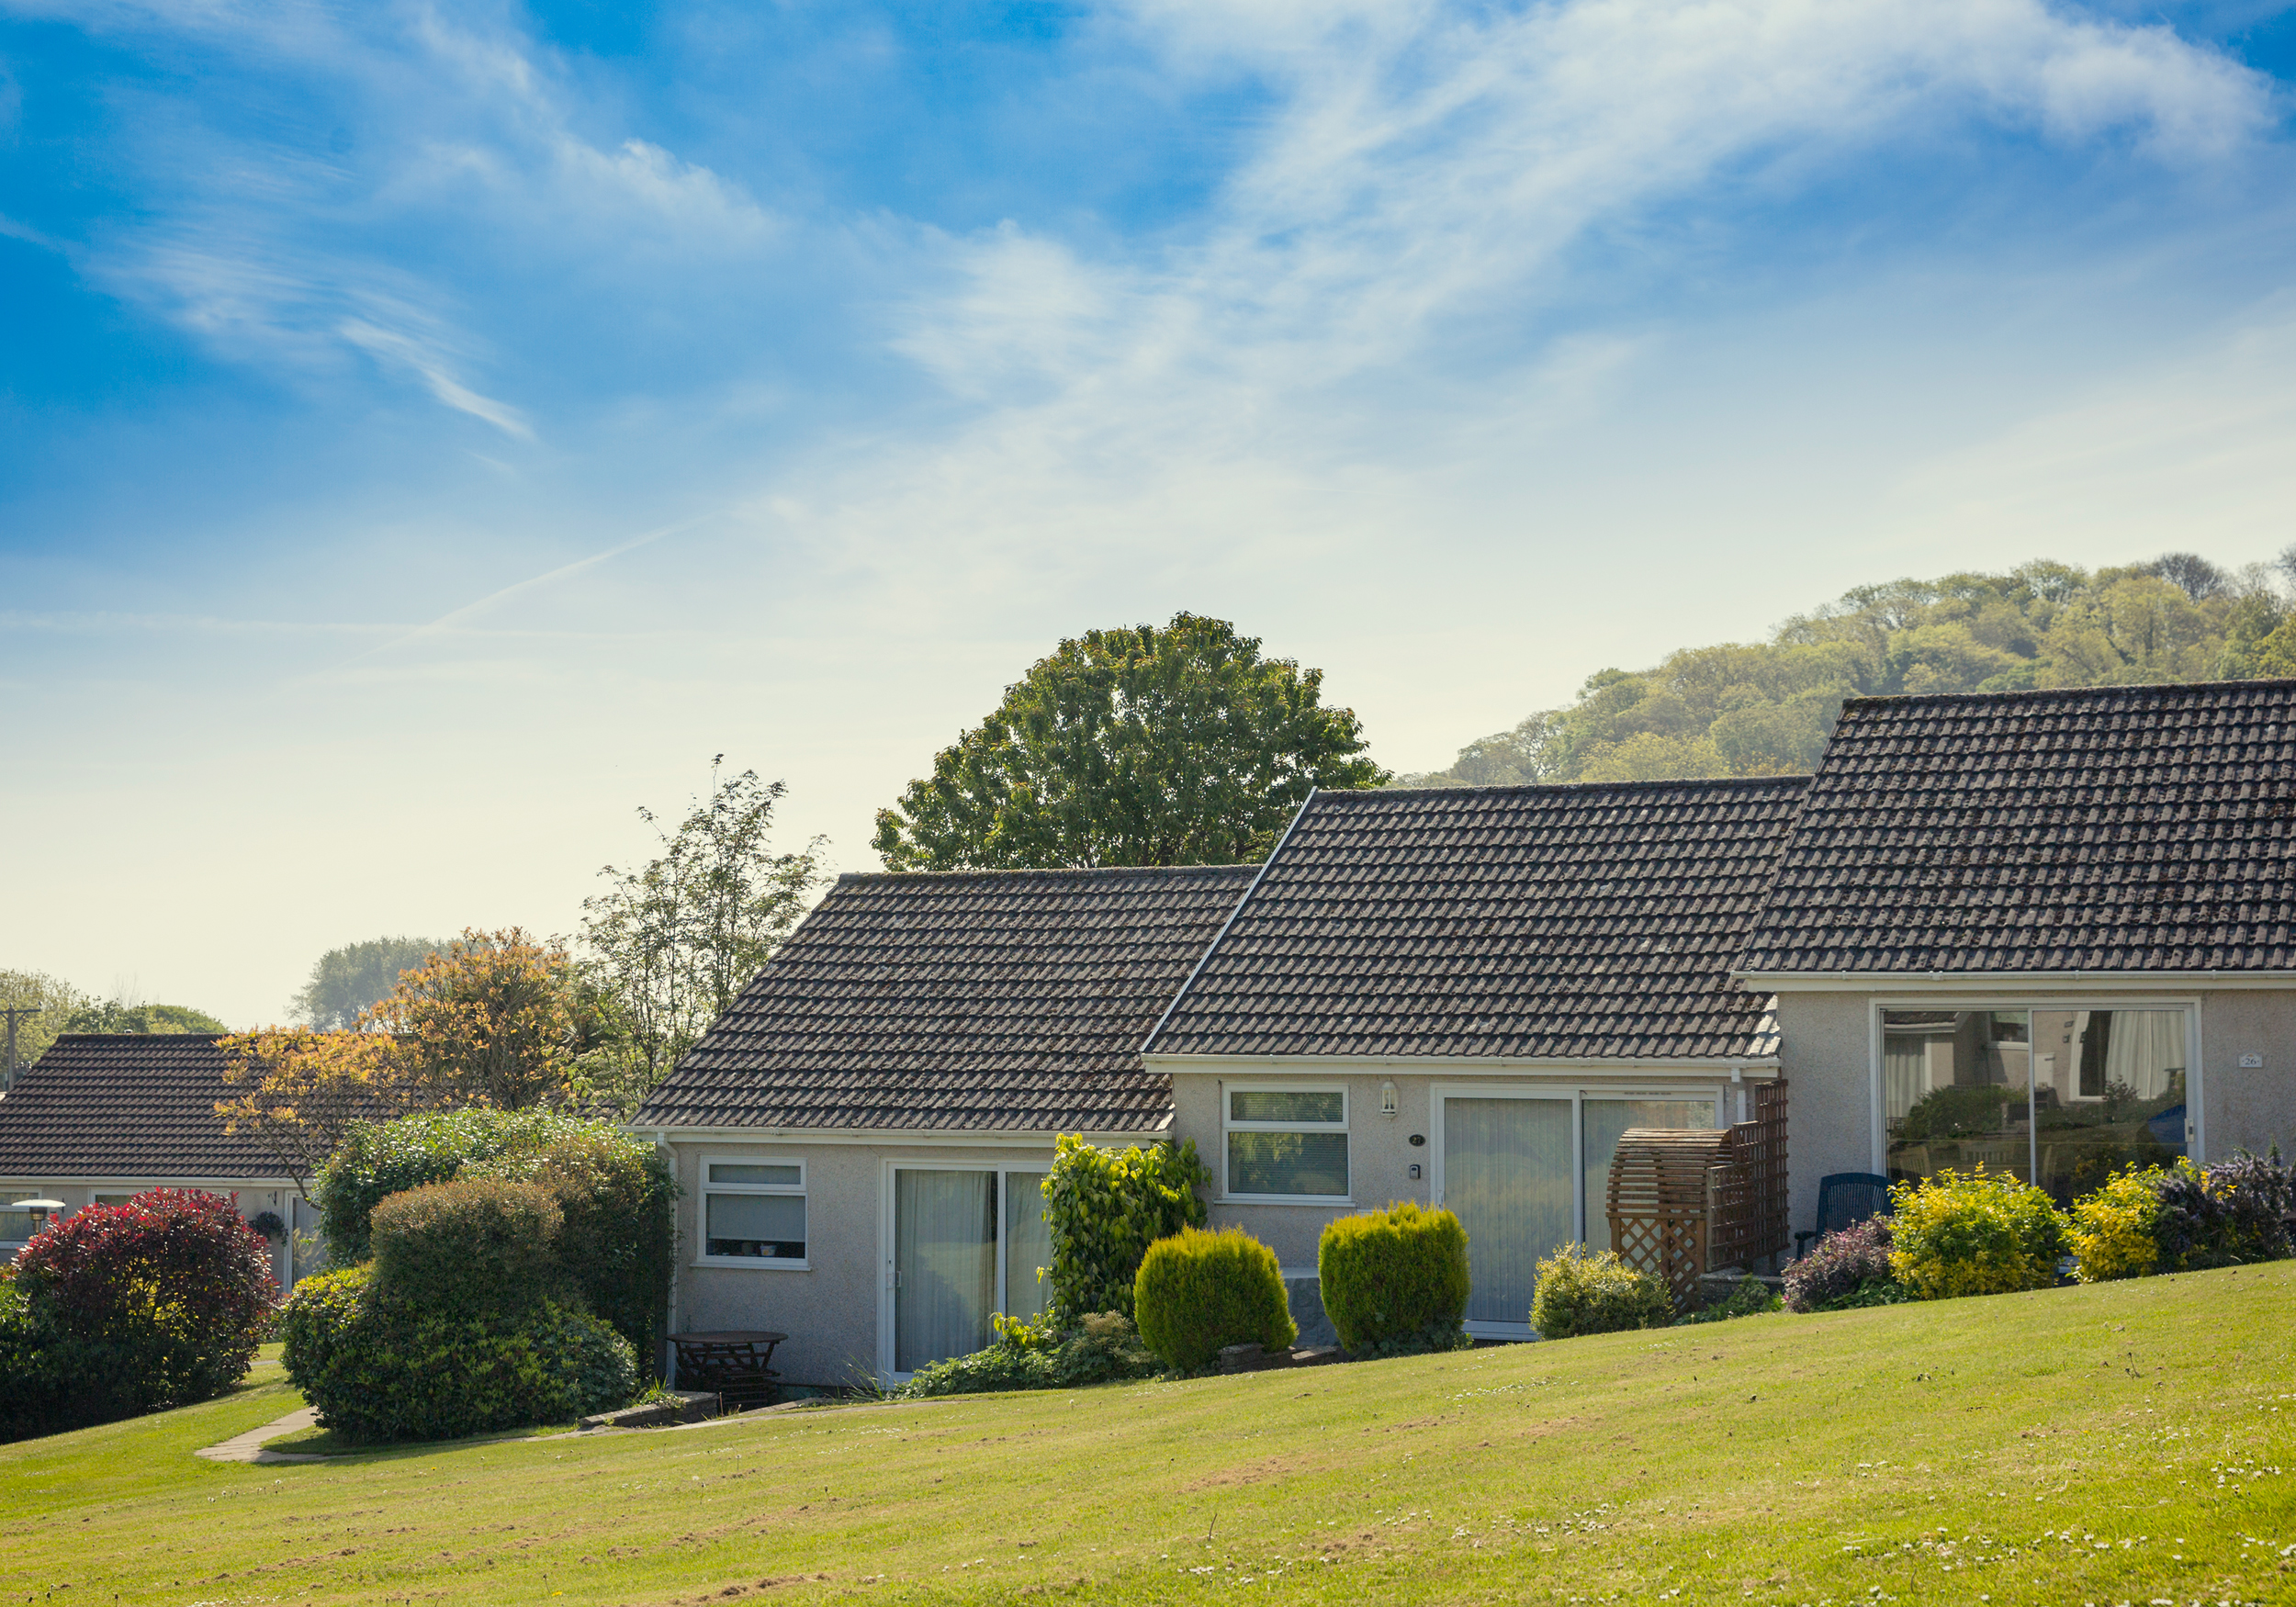 bayview-oxwich holiday rental